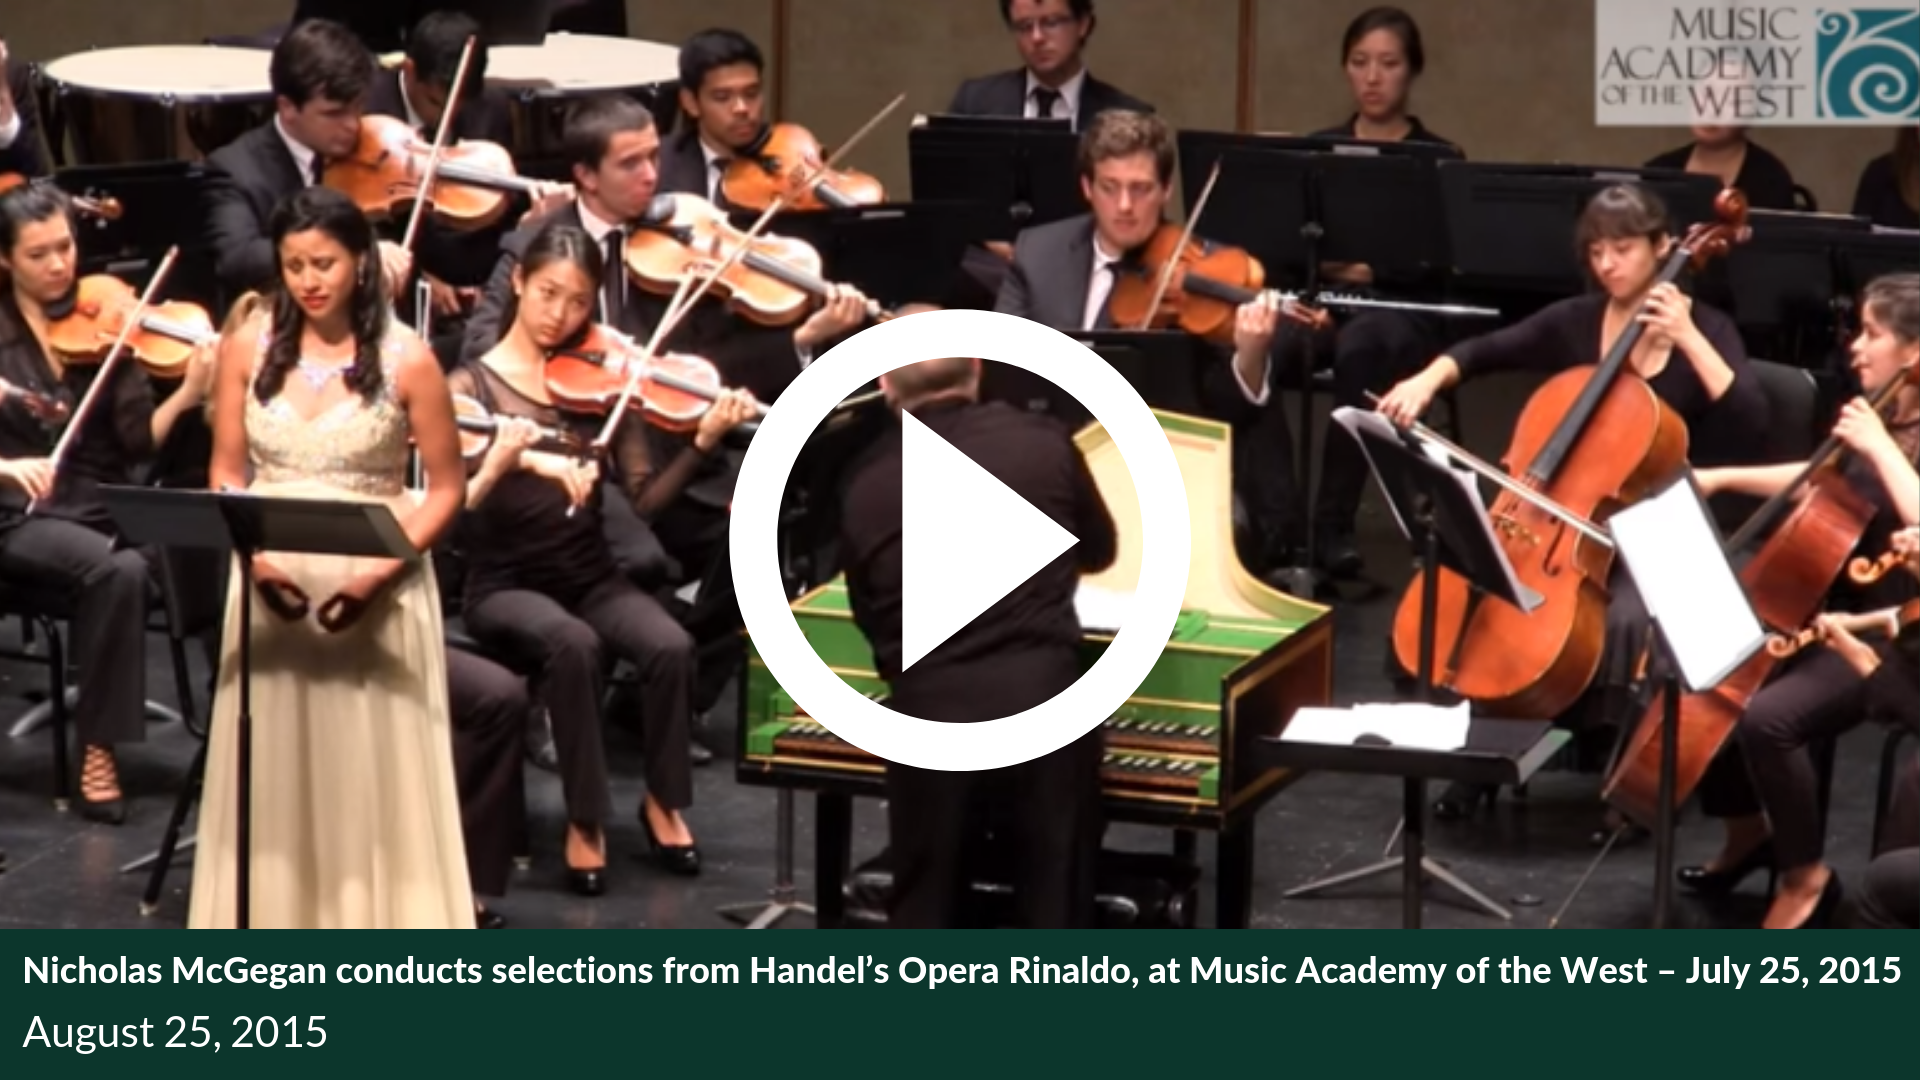 Nicholas McGegan conducts selections from Handel's Opera Rinaldo, at Music Academy of the West – July 25, 2015